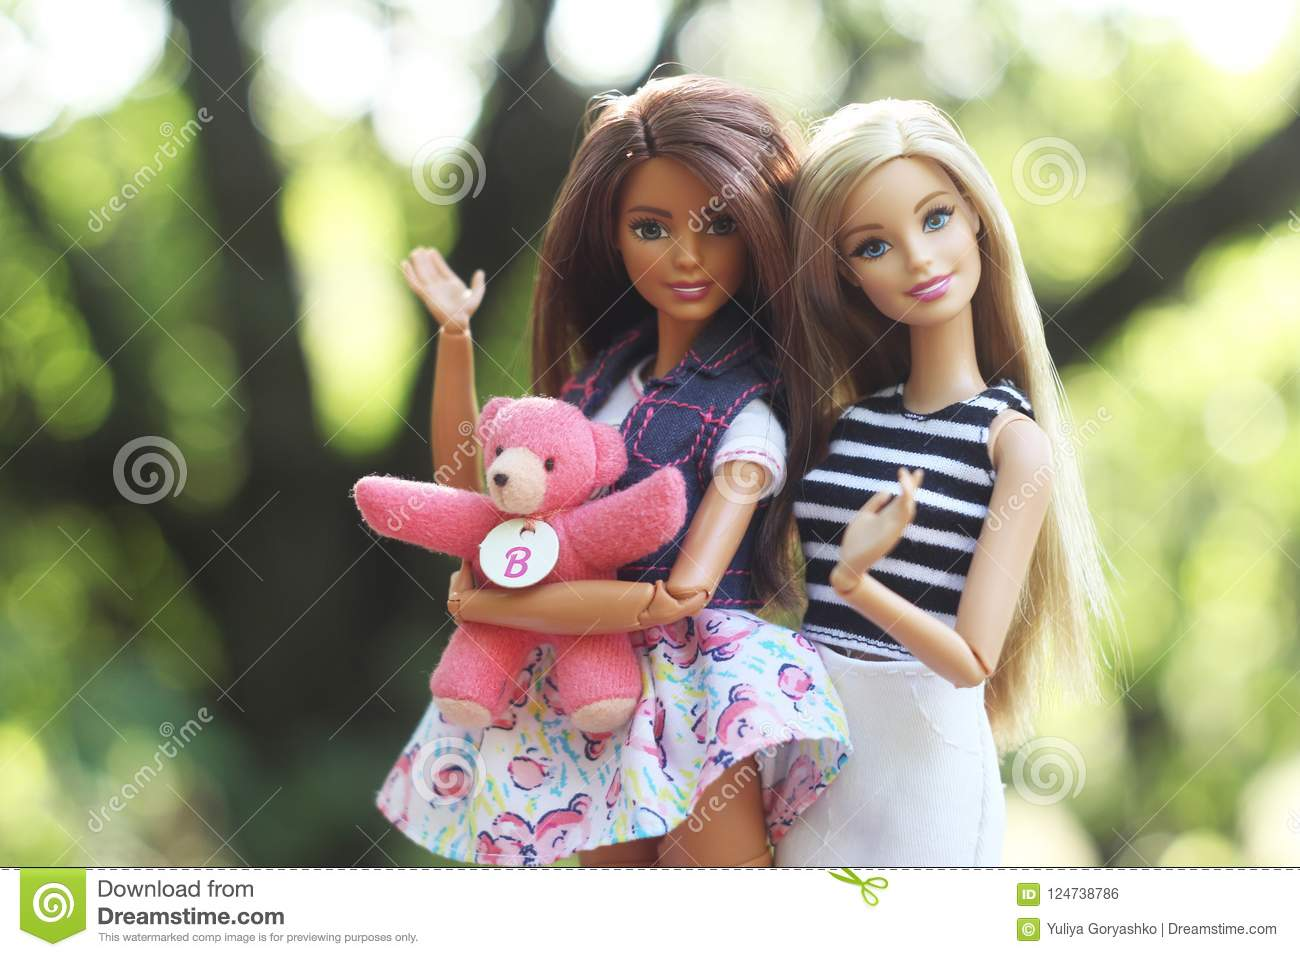 A Beautiful Barbie With White And Brown Hair Stylish Blondy Doll Editorial Use Only Editorial Photo Image Of Brown Cute 124738786